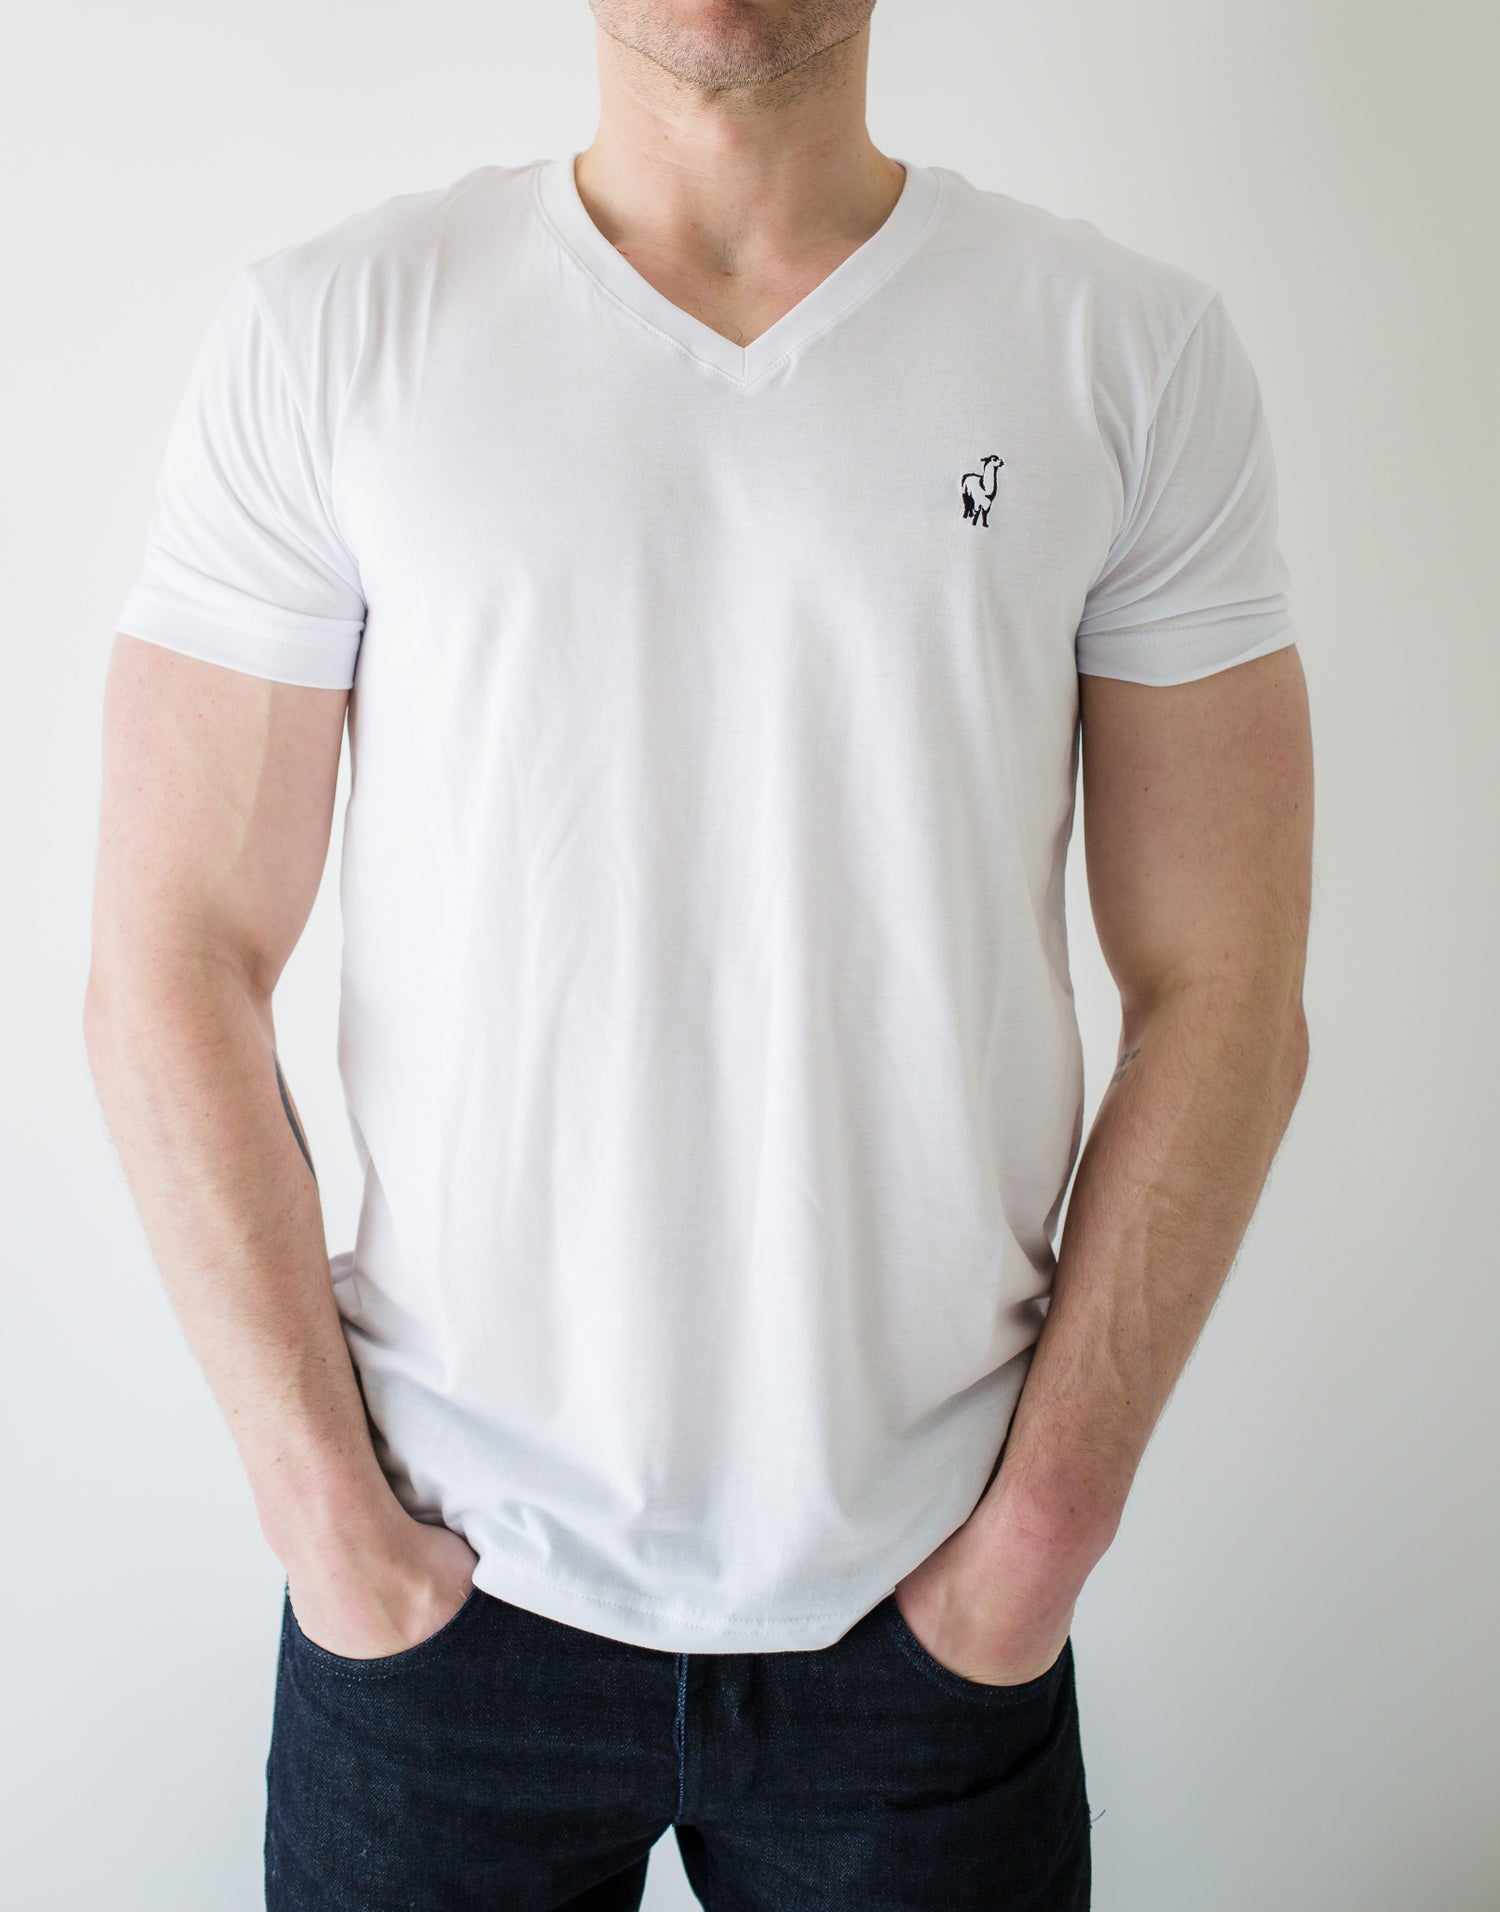 Image of Pima Premium T-Shirt Men's V-Neck